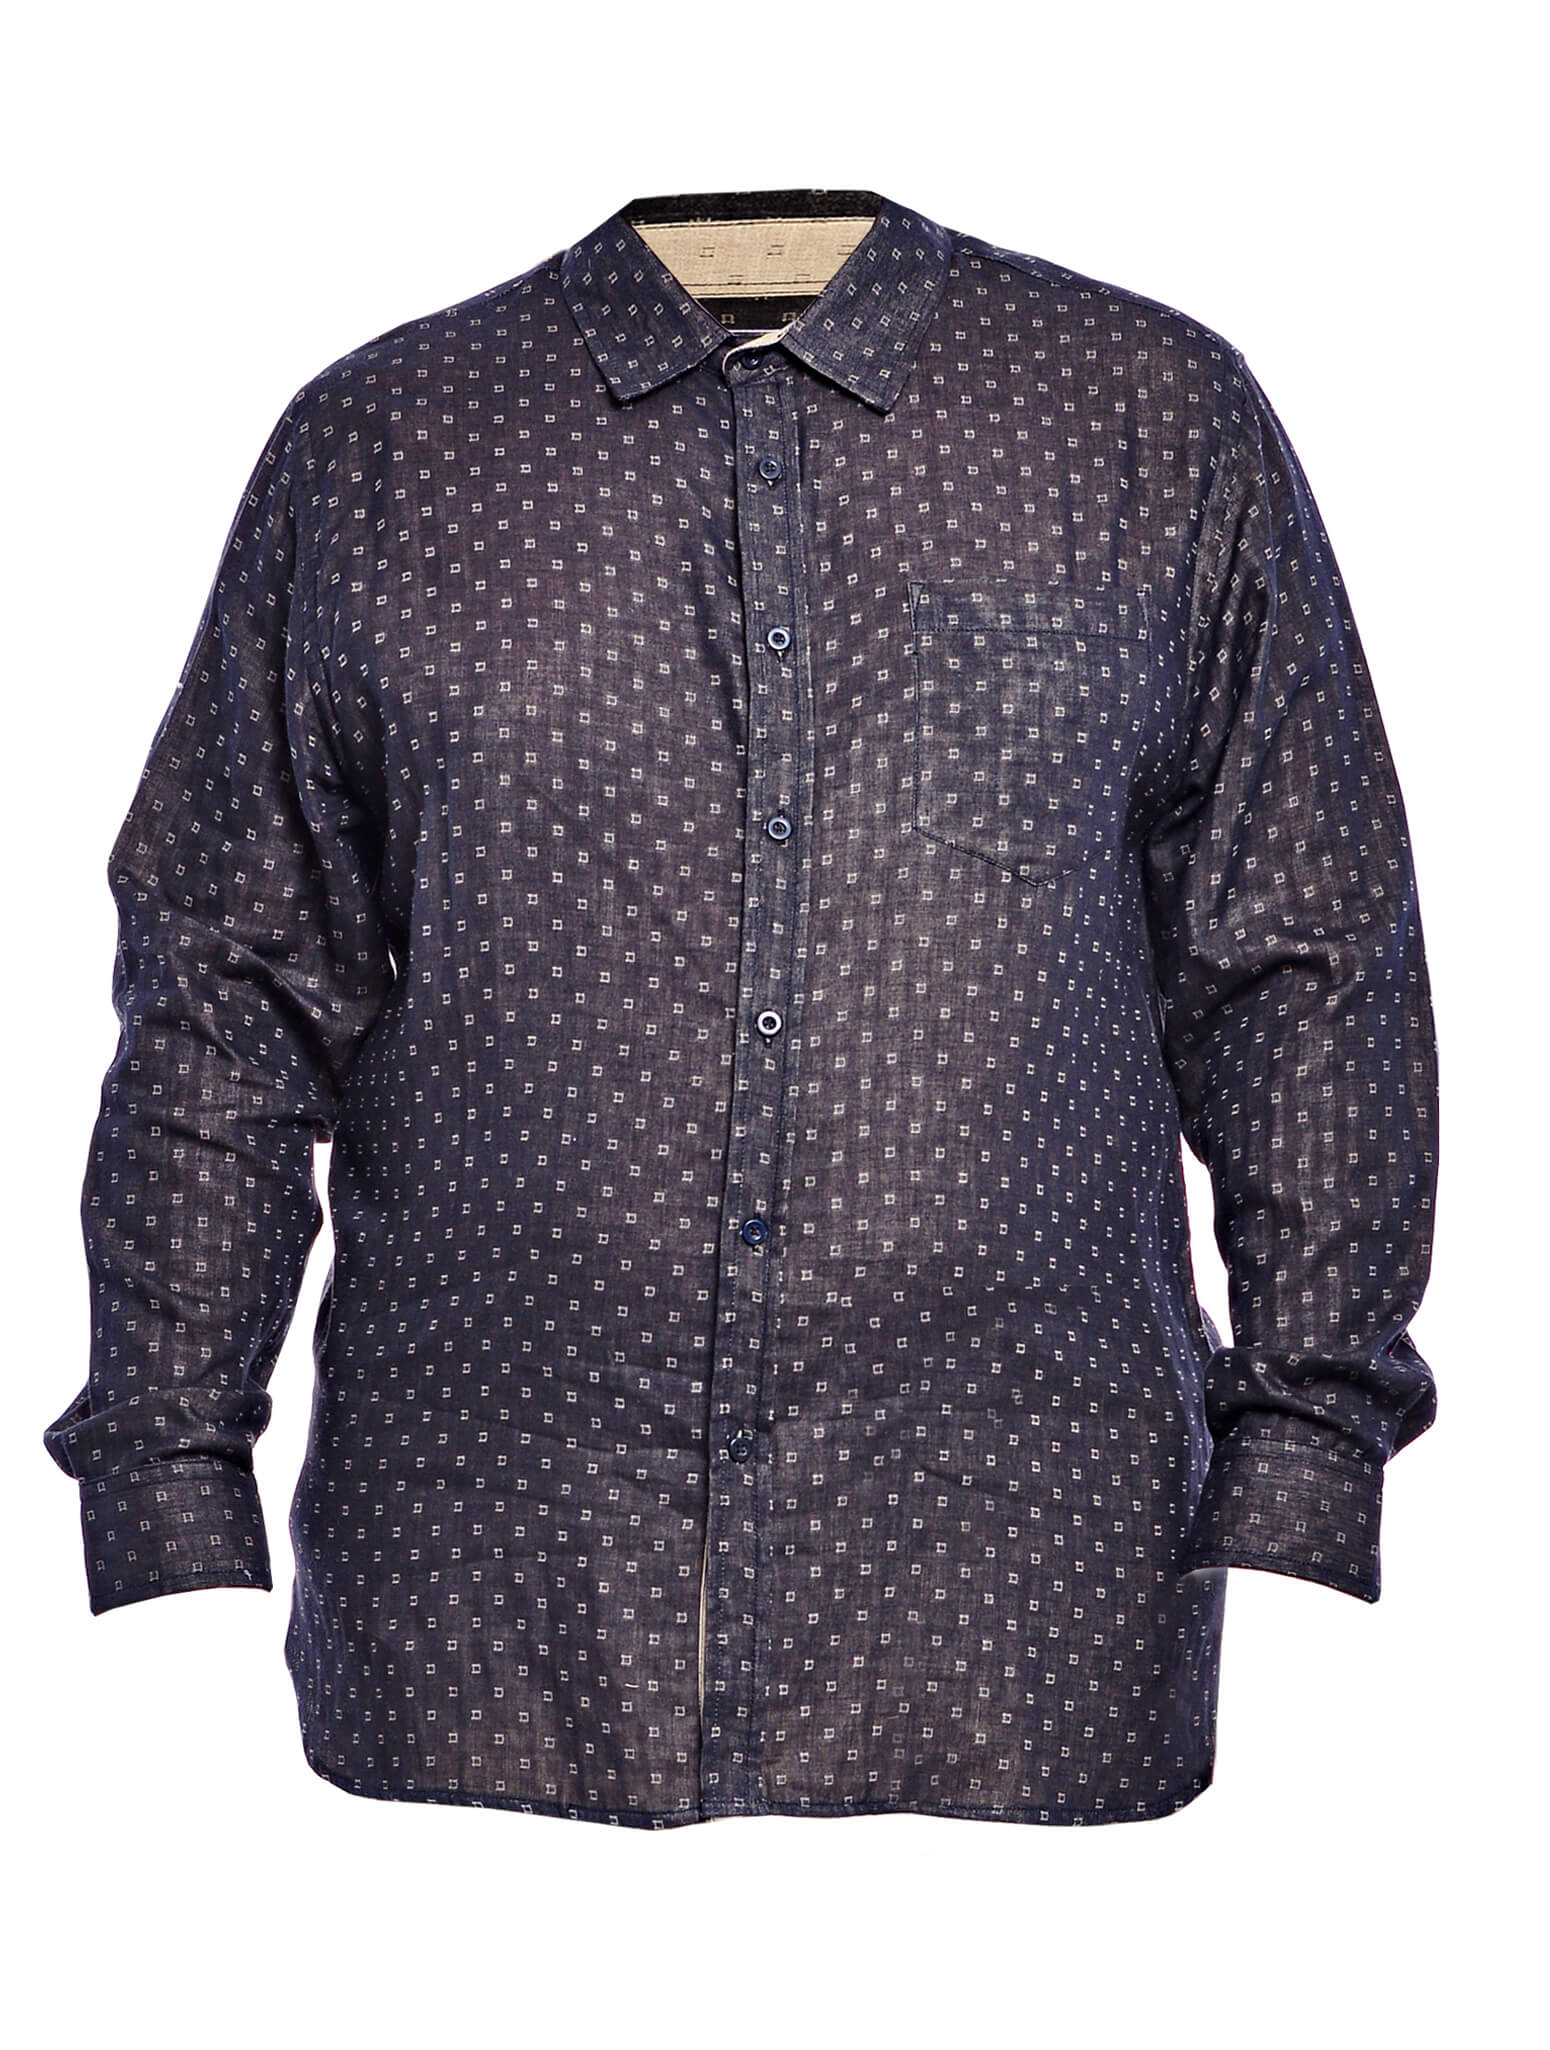 Jazz & Co Men Plus Size Double cloth long sleeve shirt in Black